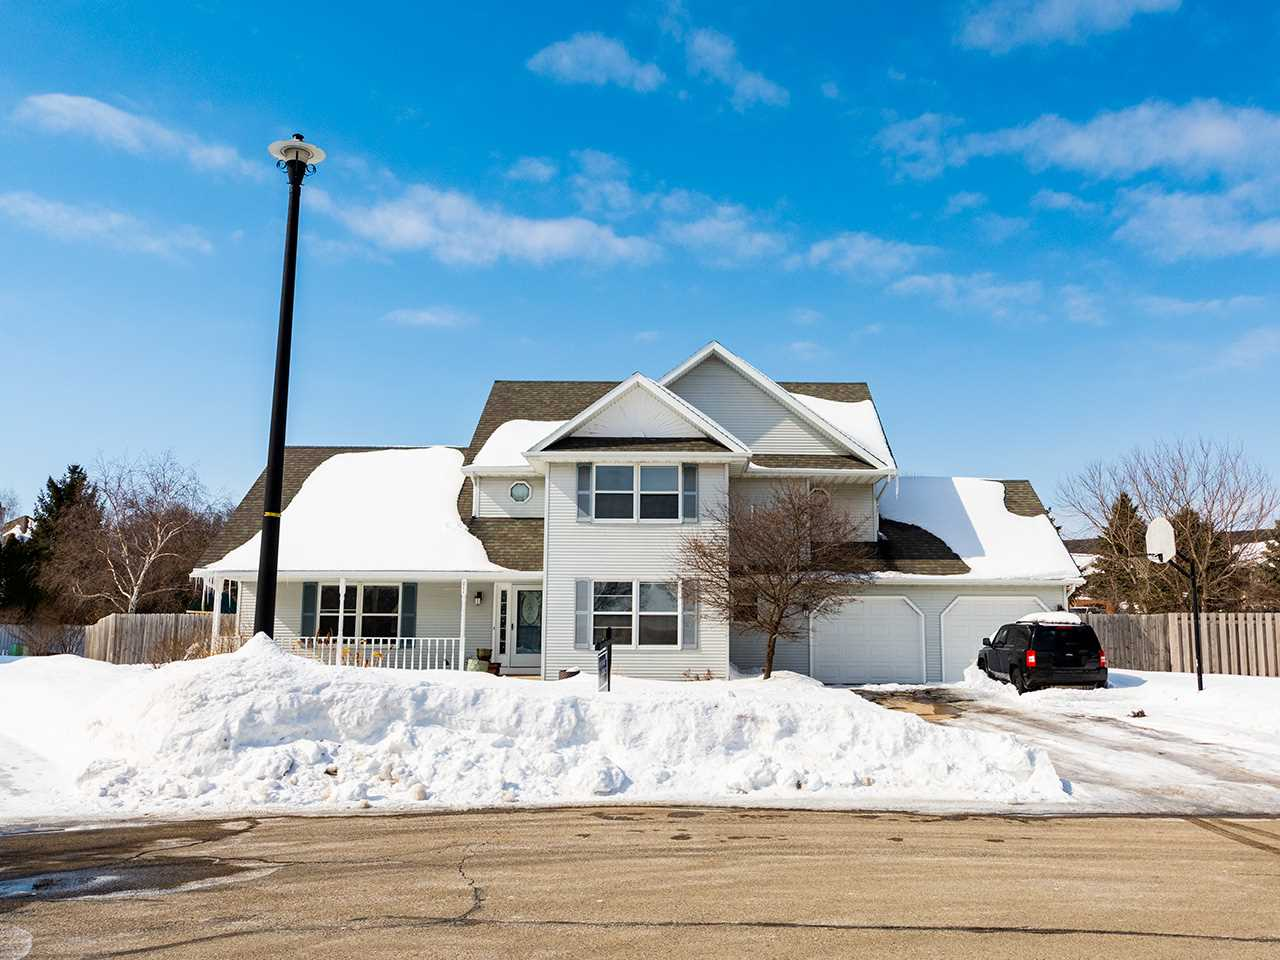 East De Pere Home for Sale in Wisconsin